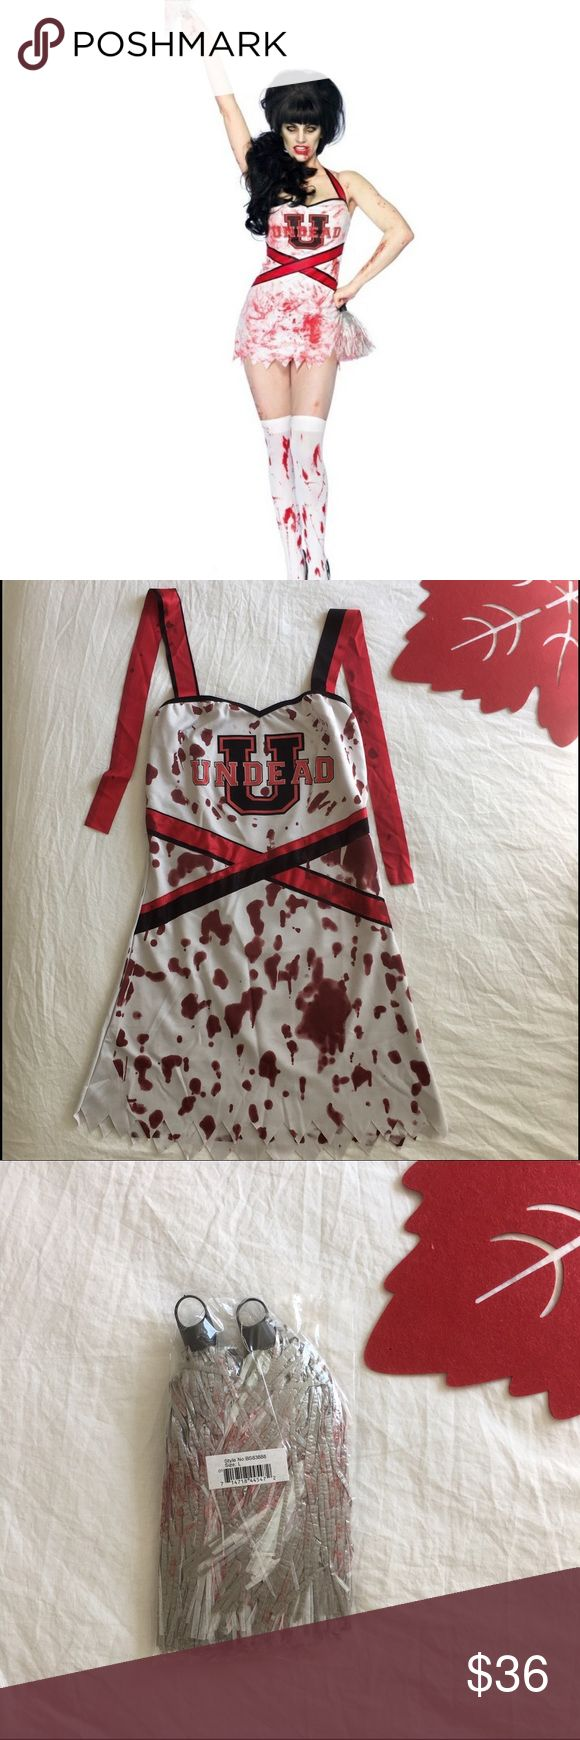 """🎃 ADULT ZOMBIE CHEER SQUAD MOVIE COSTUME Zombie Cheer Squad Movie Costume includes a red, white, and black dress with distressed hem, blood spatters, and """"Undead U"""" design, plus a set of bloodied pom poms. Please note, makeup, wig, stockings and shoes are not included. Adult size Medium. Material: Polyester. Care Instructions: Spot Clean Other"""